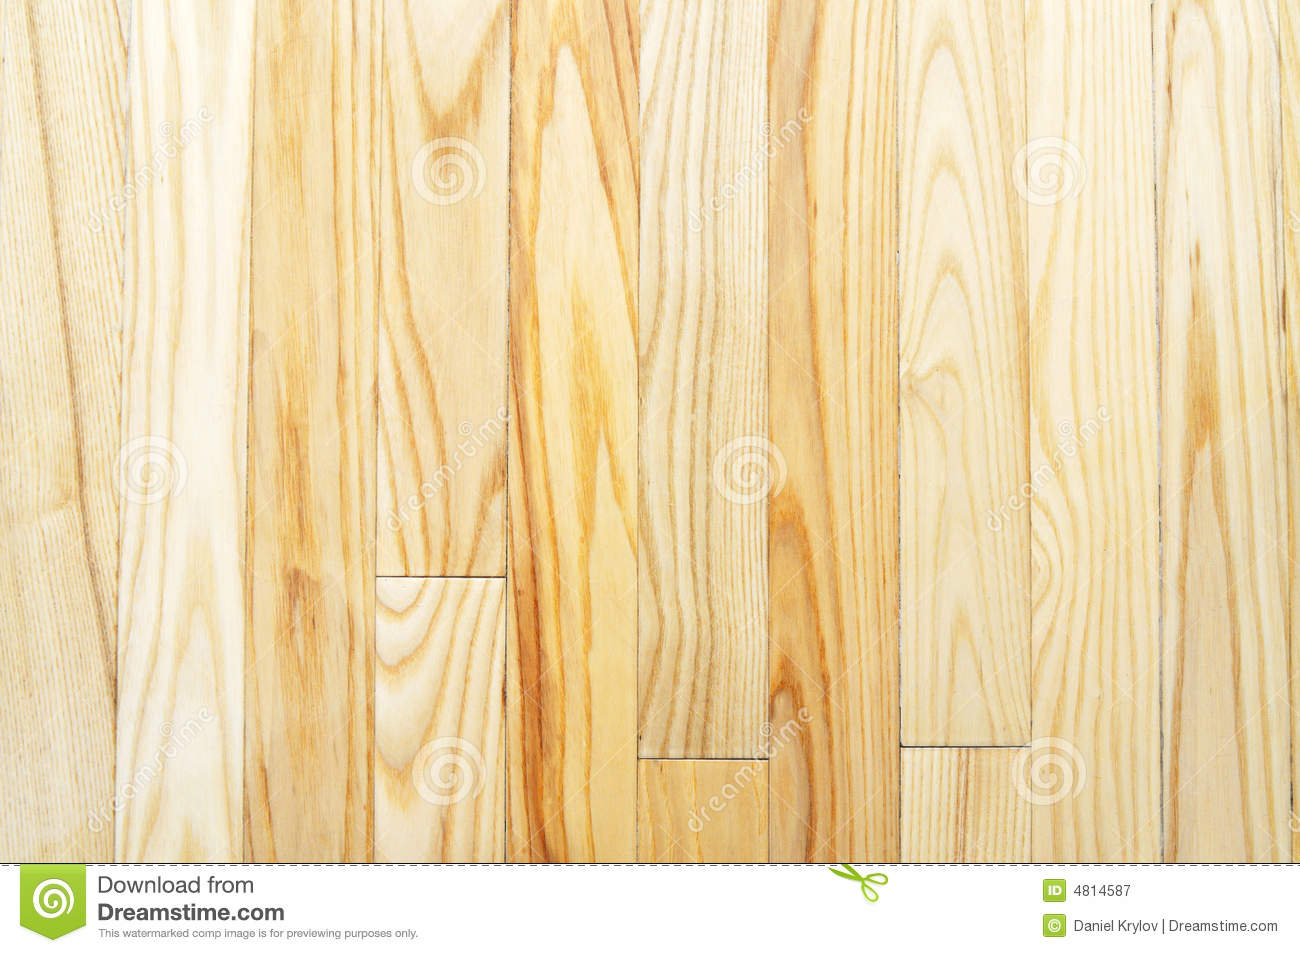 close up picture of light coloured hardwood floor background texture